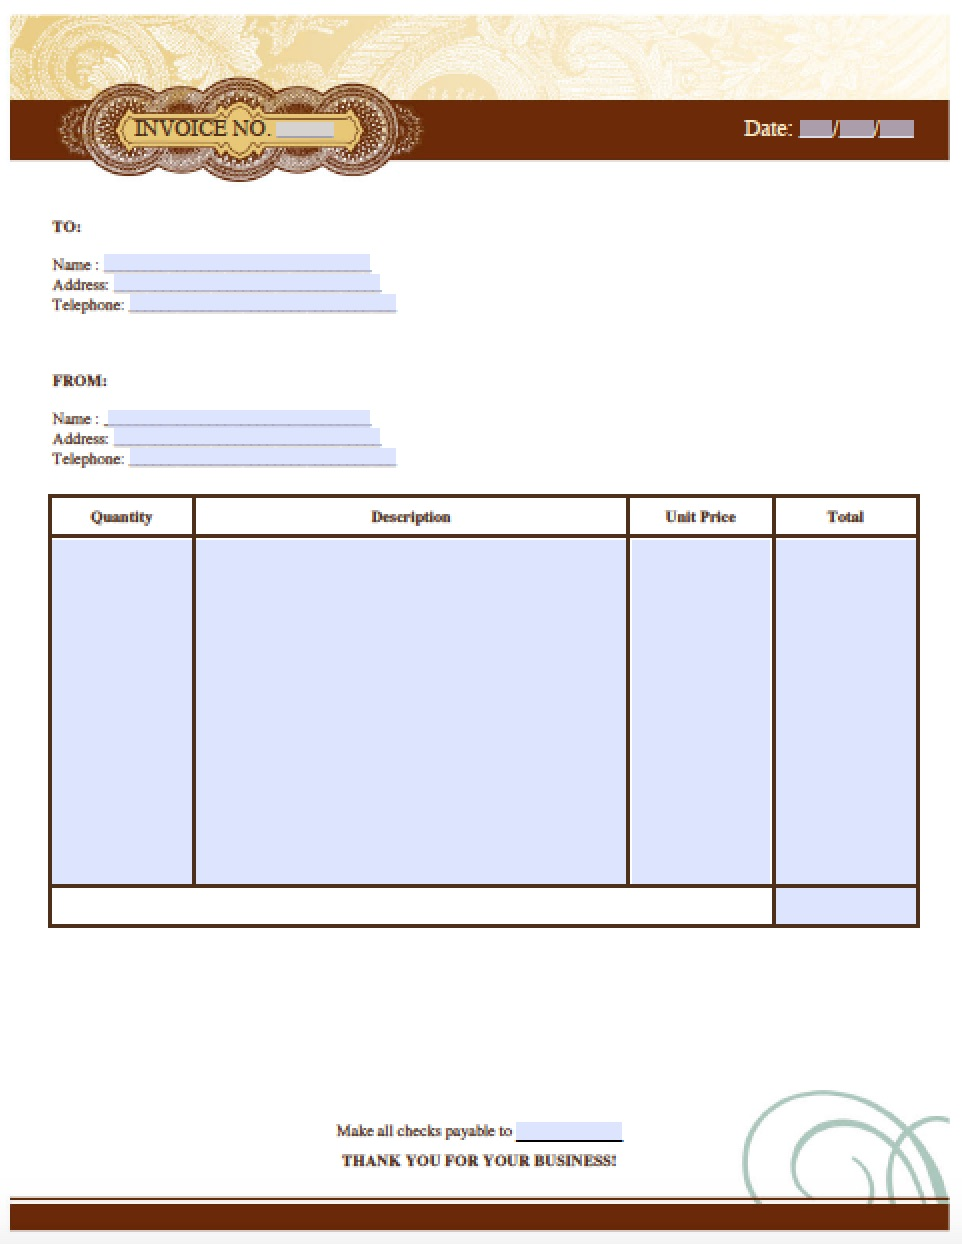 Free Artist Invoice Template Excel PDF Word Doc - Invoices in word for service business